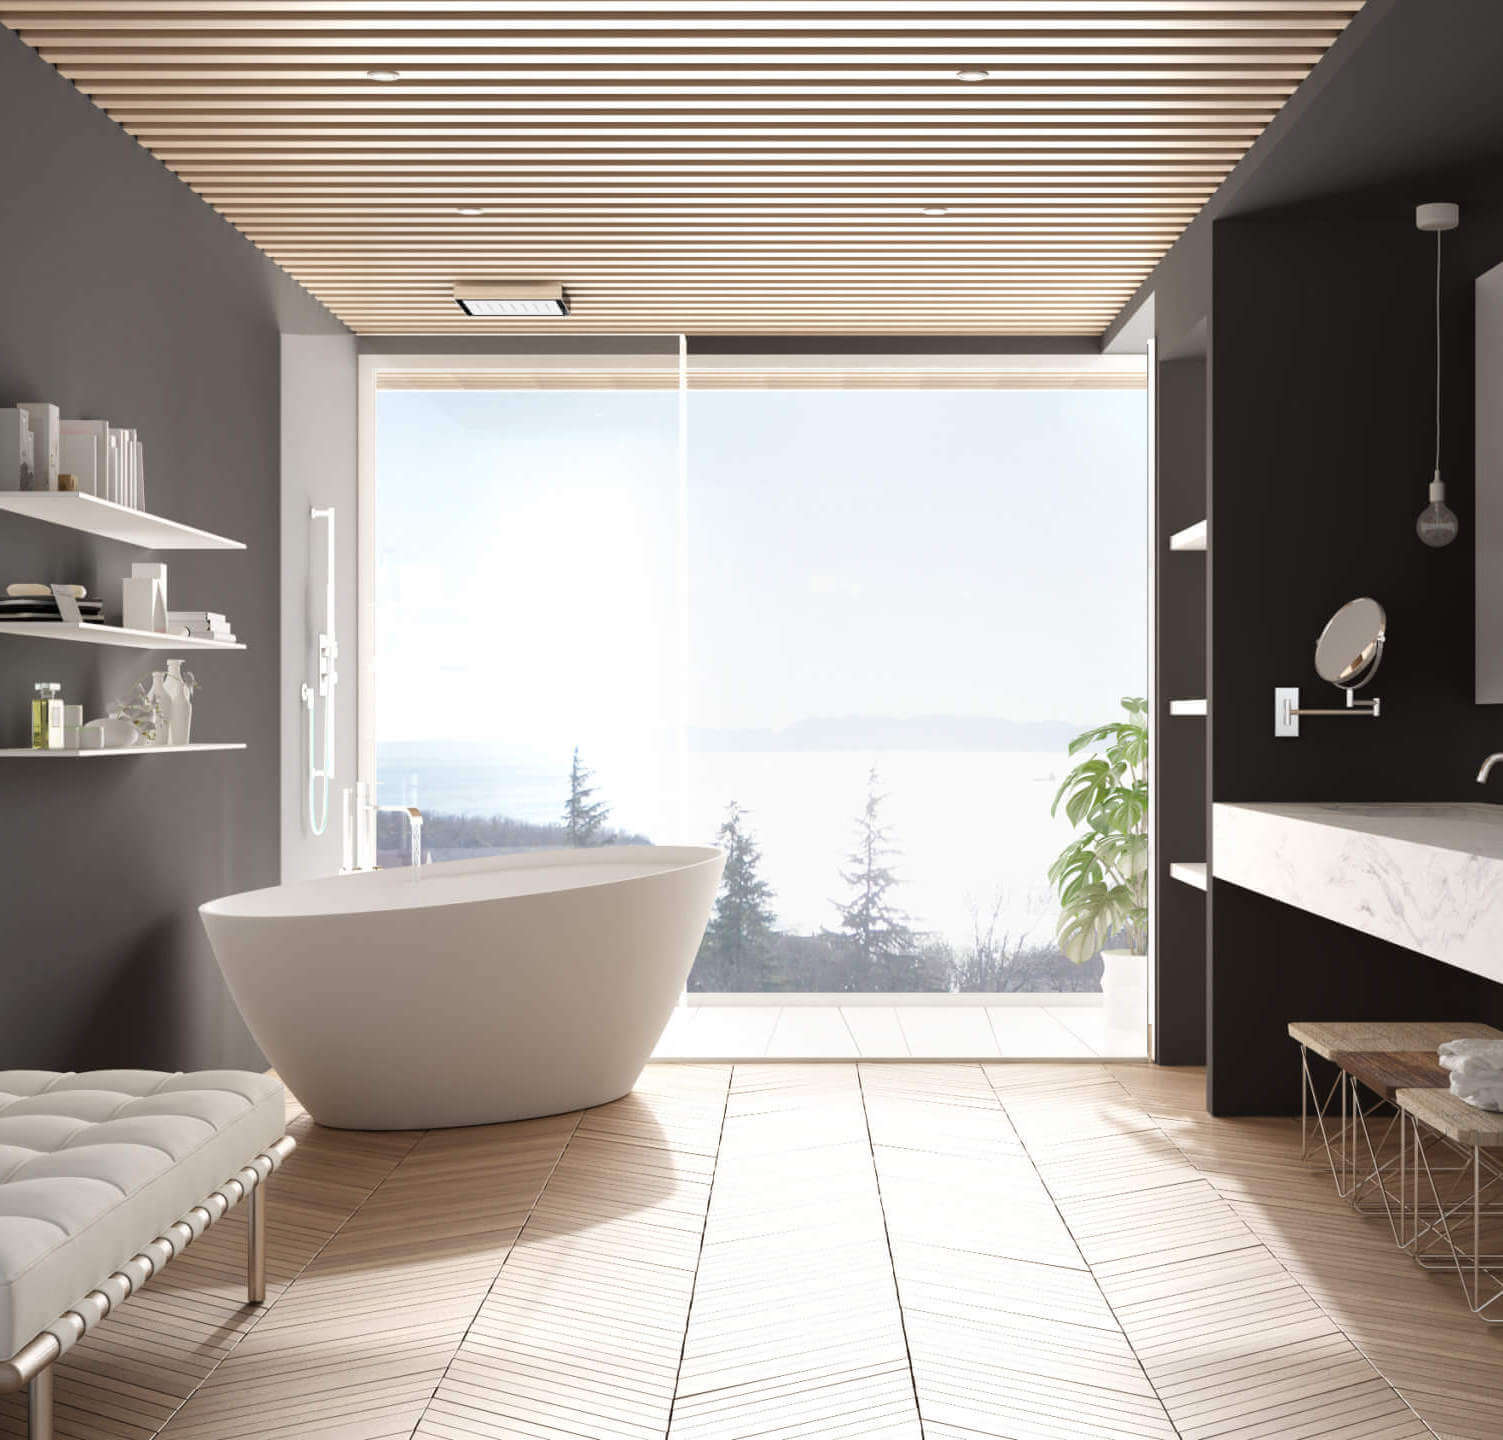 6 Essential Things You Need in Your Bathroom Remodel